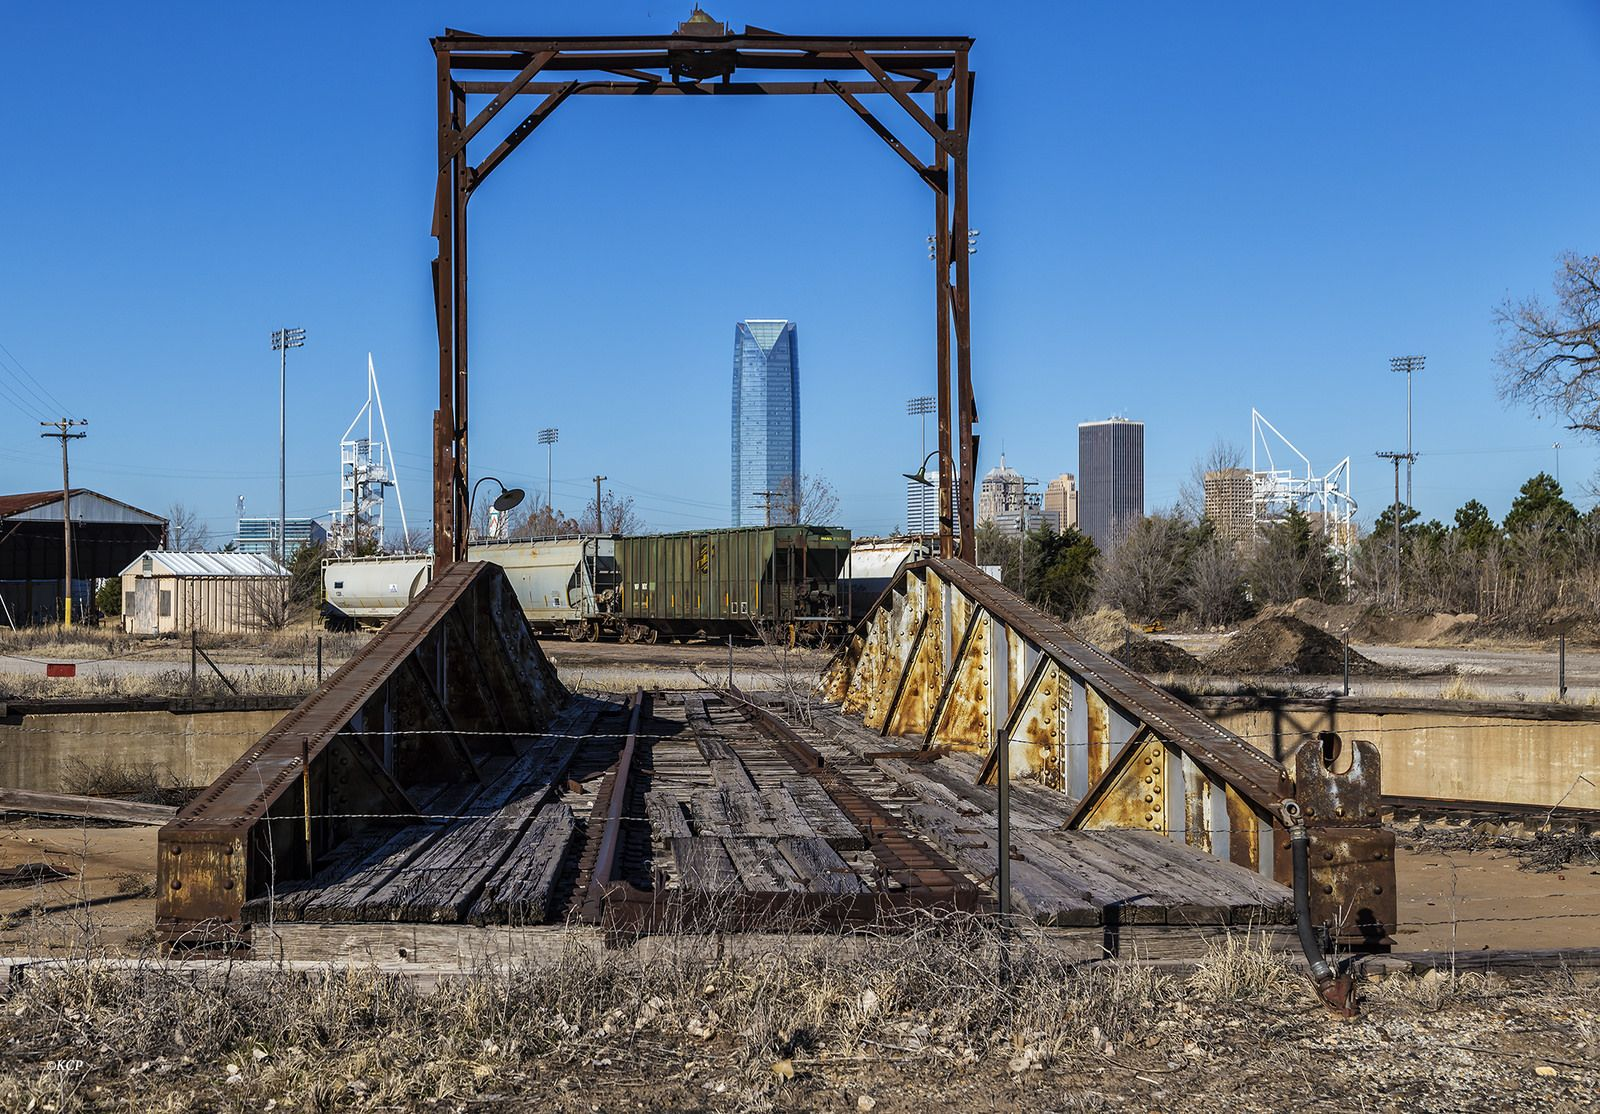 Old Abandoned Railroad Turntable in 2019 | TRAINS